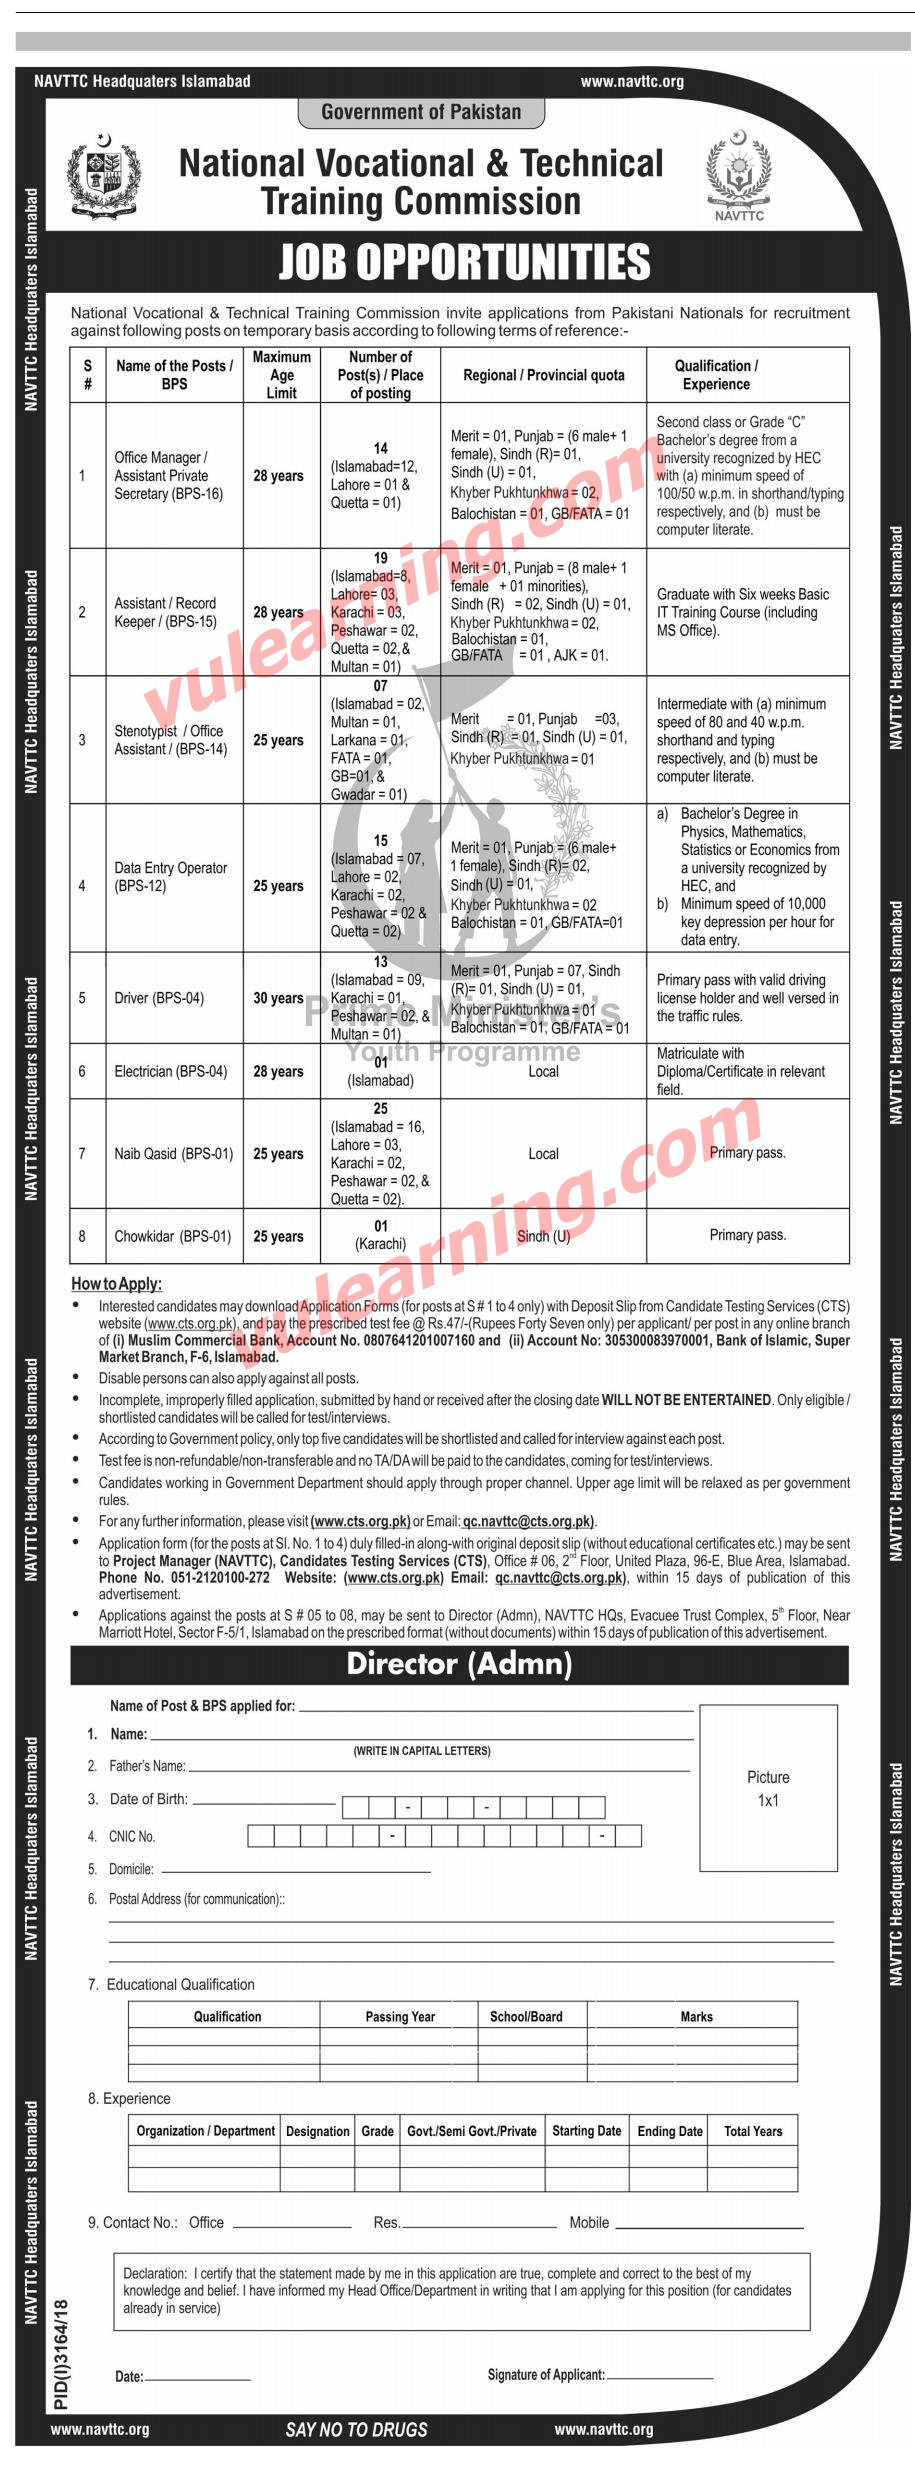 73102 Ogdcl Application Form For Job on free generic, blank generic, part time,